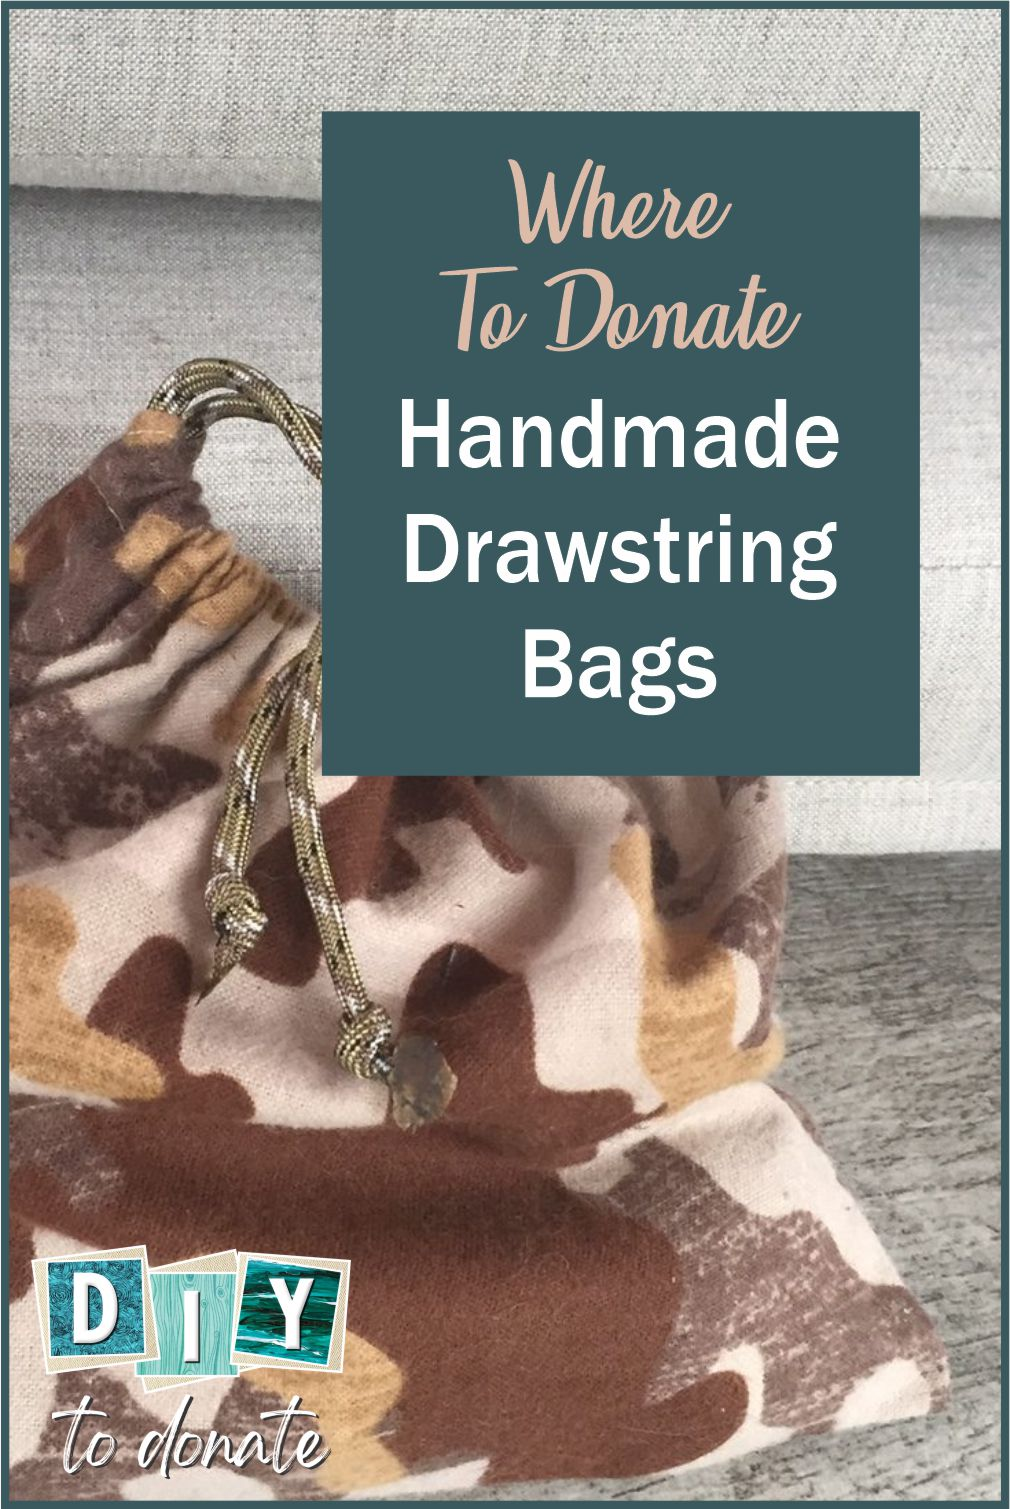 Our soldiers usually don't have much space to keep their small personal items. Handmade drawstring bags are the solution. #diytodonate #diy #bags #drawstringbags ##donate #giveback #helpers #community #communityservice #handmade